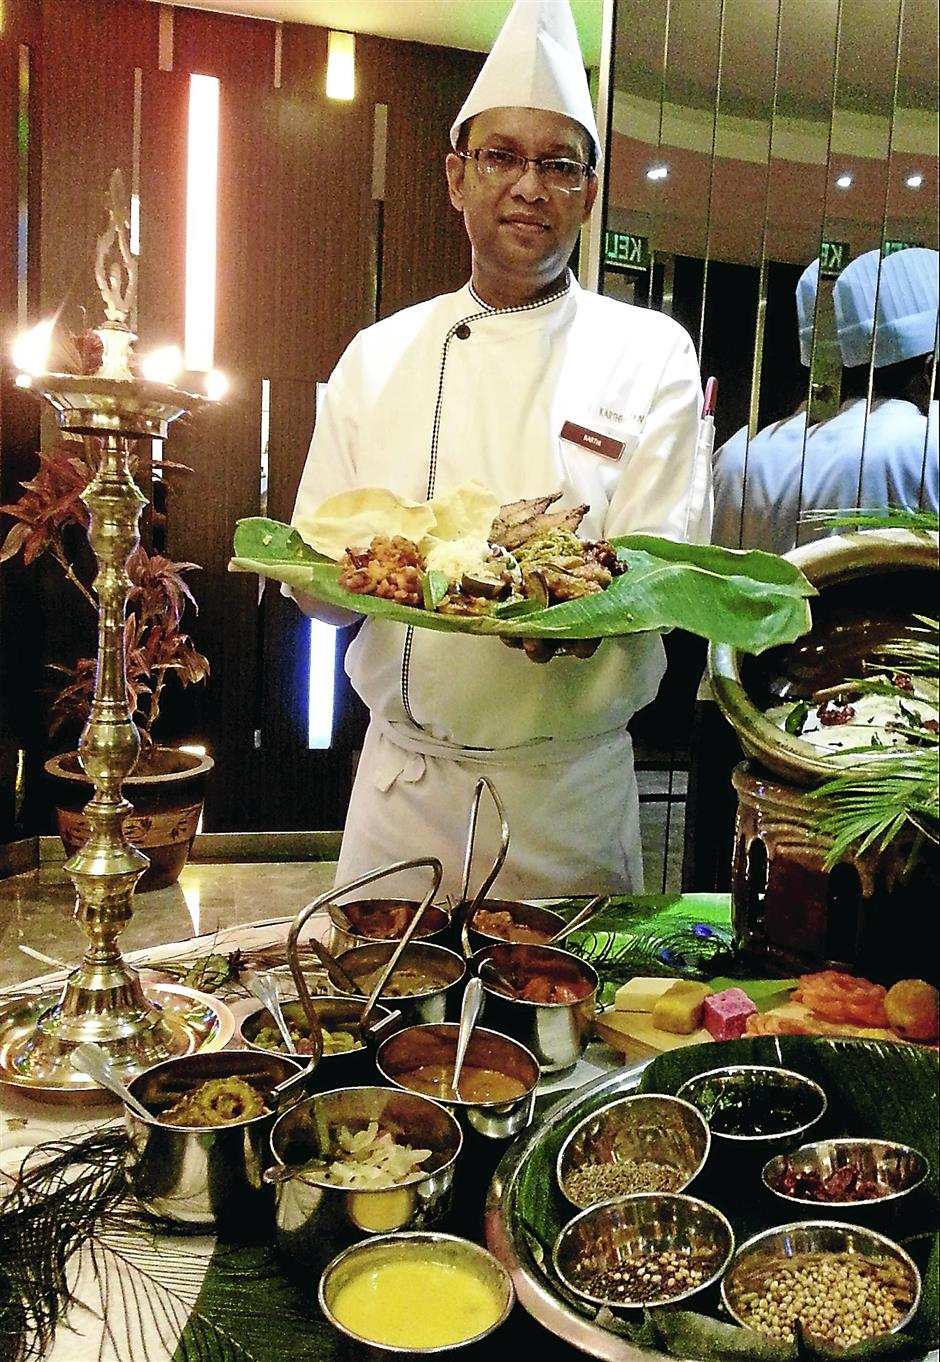 Chef K. Karthigayan will be dishing up Chettinad curries during the Flavours of Chettinad promotion at Grand Lexis Port Dickson from now until November 30.